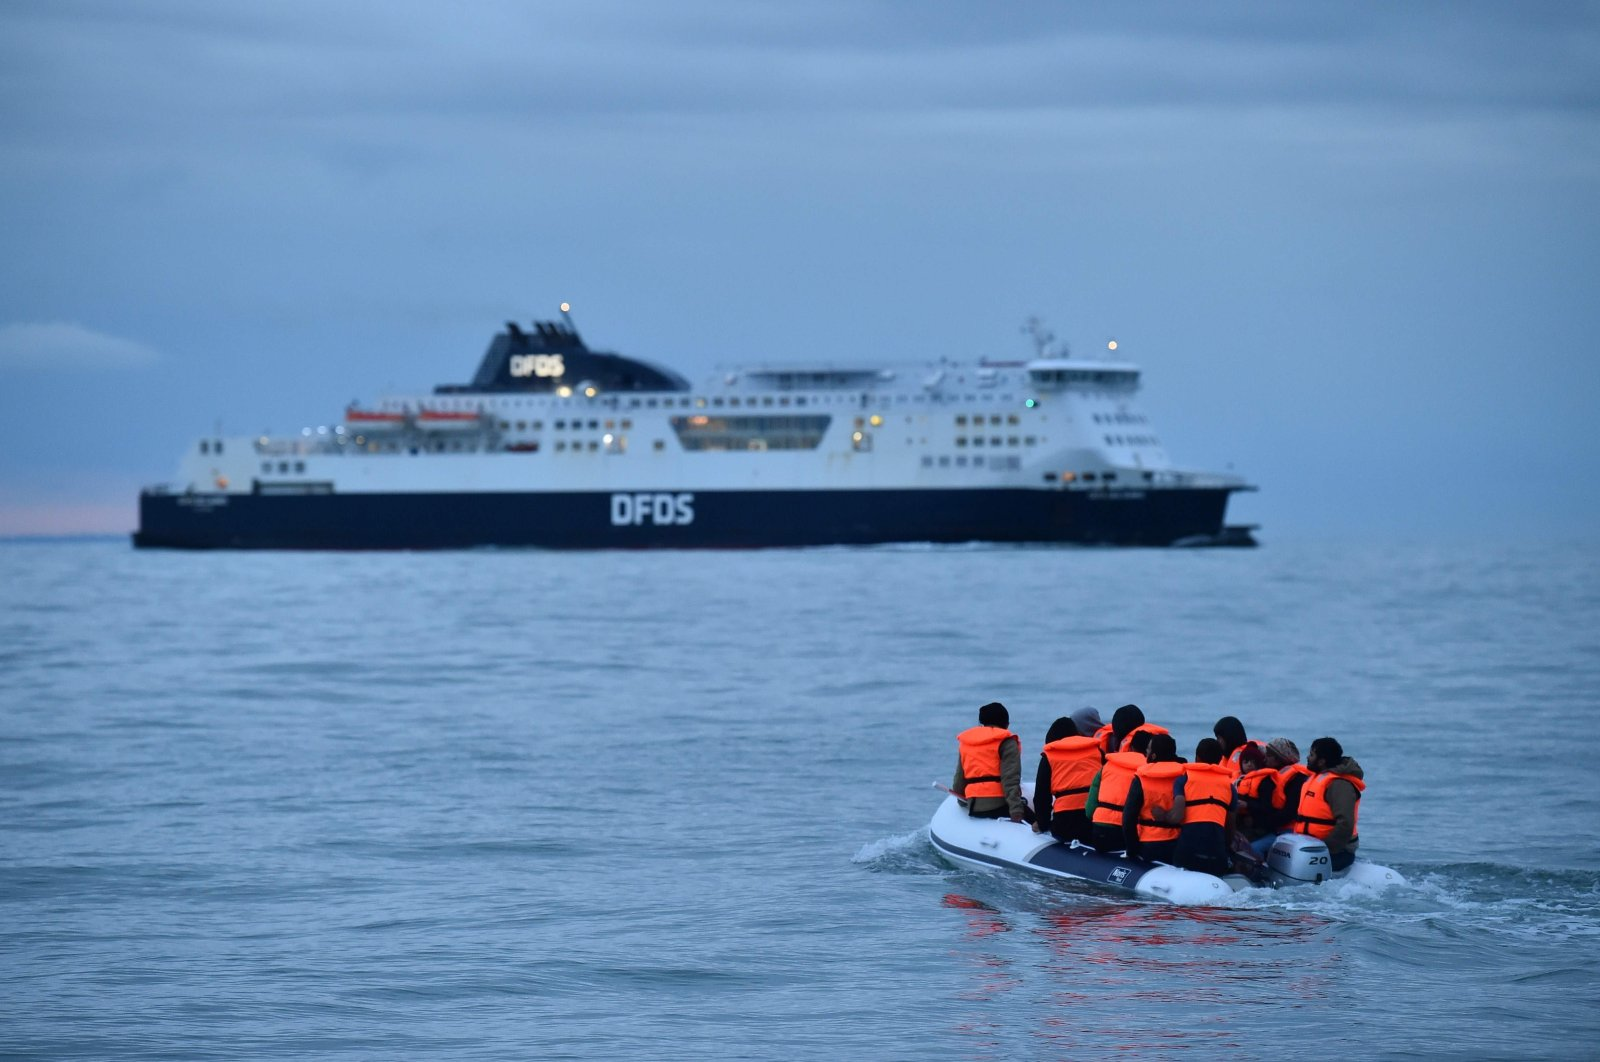 Migrants sail across the English Channel in a dinghy toward the south coast of England, Sept. 1, 2020. (AFP Photo)